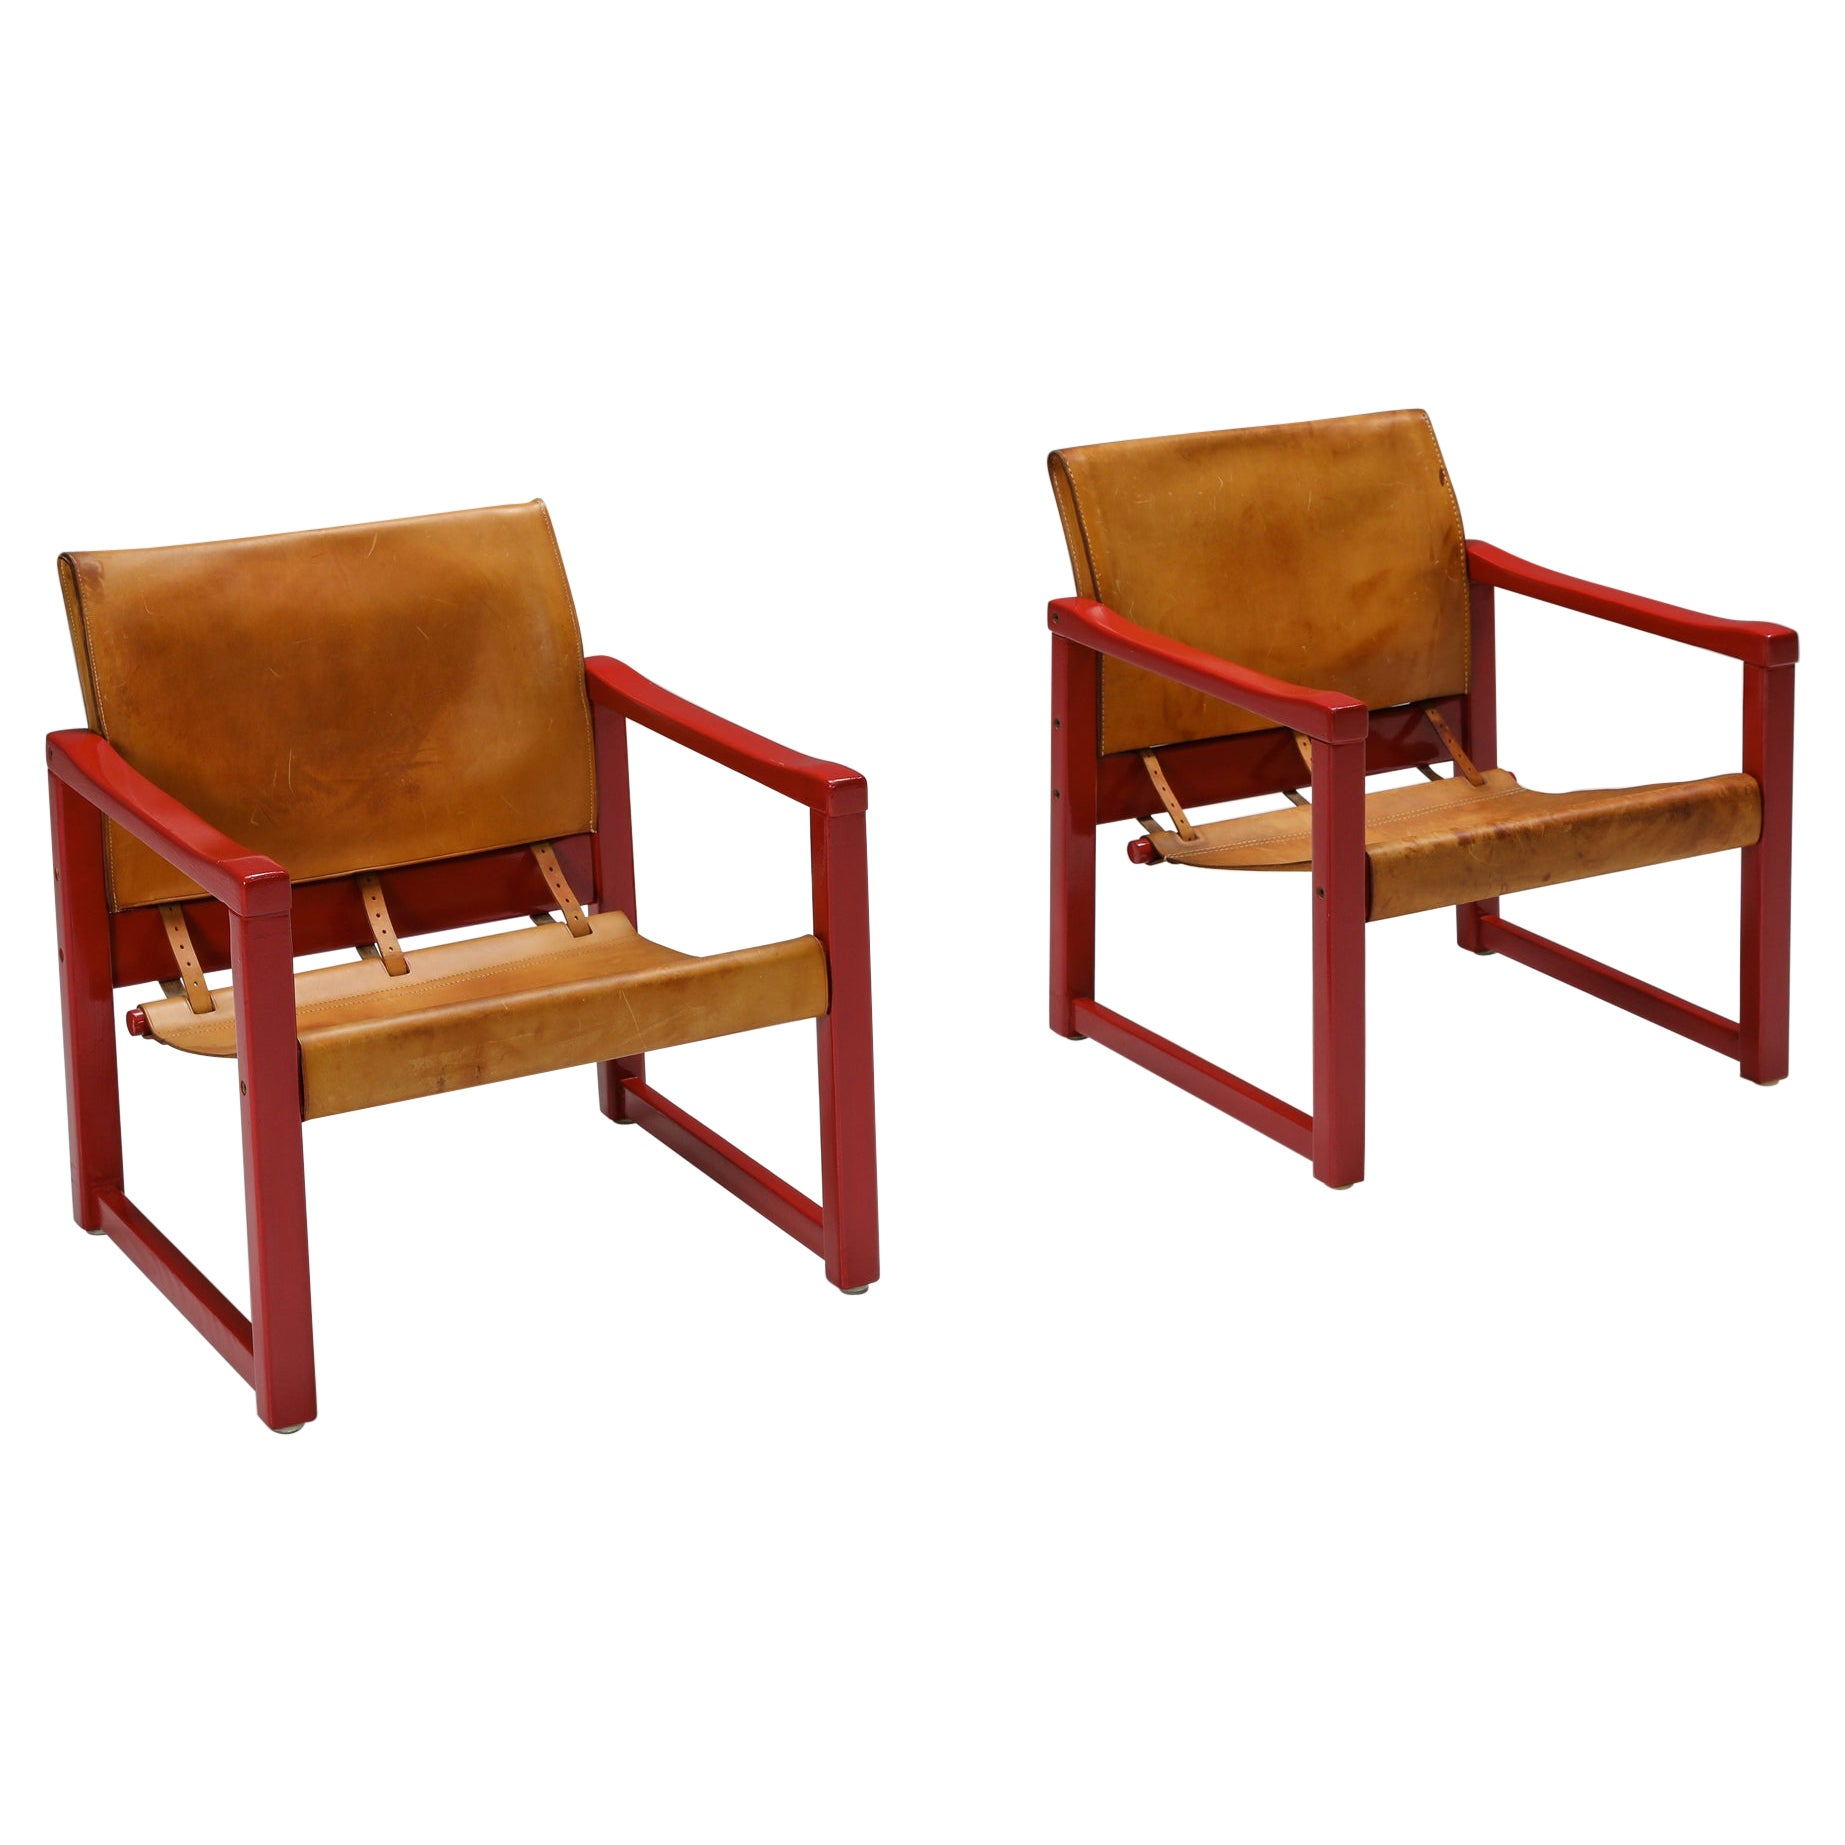 Set of Cognac Leather Karin Mobring Safari Chair Model Diana by Ikea in Sweden